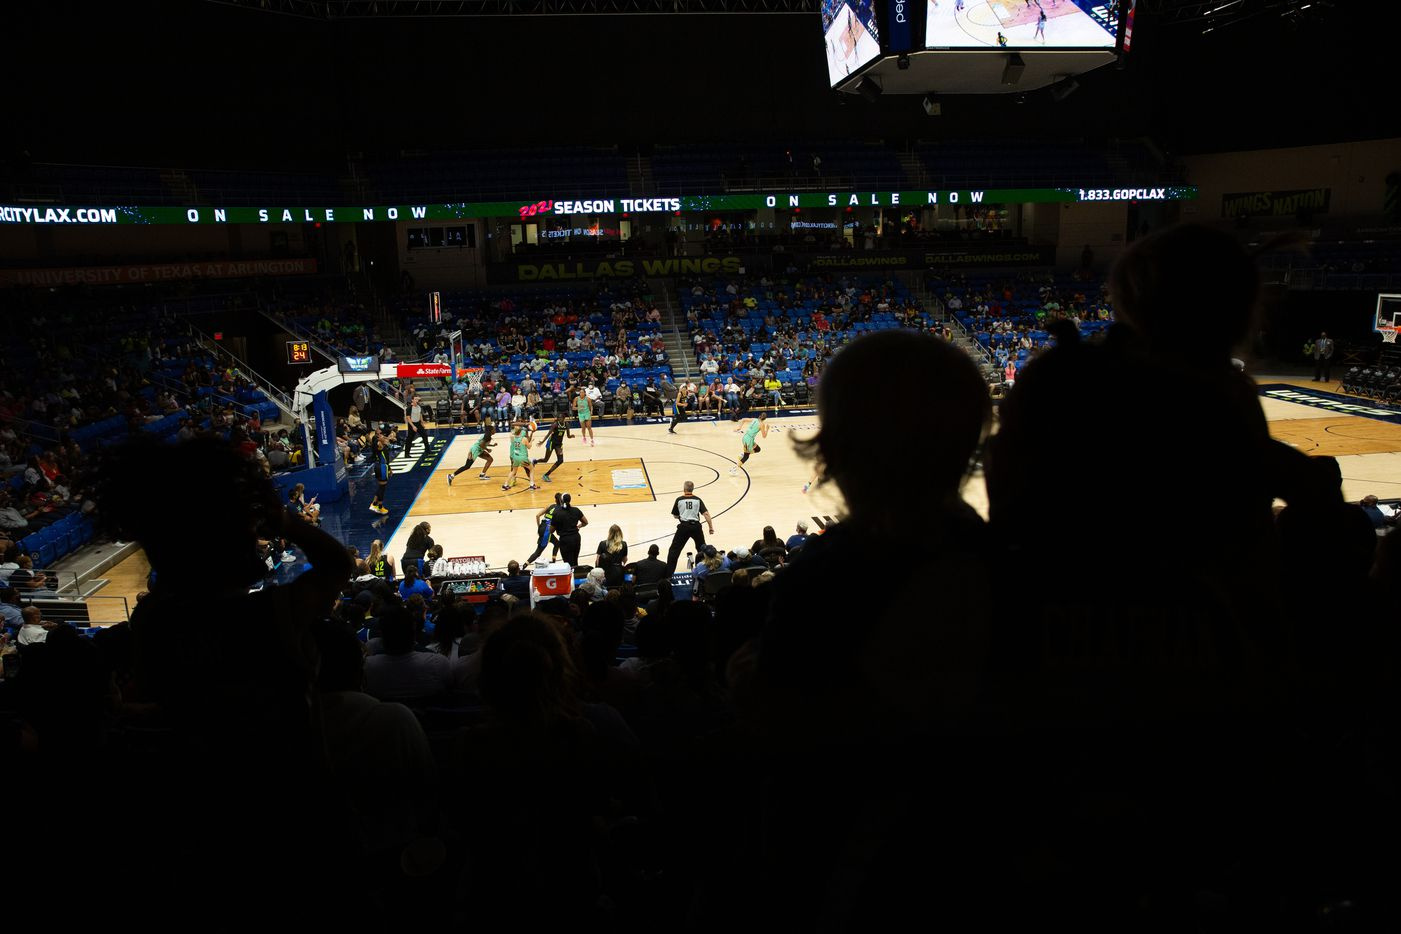 Fans watch the Dallas Wings game against New York Liberty at College Park Center in Arlington, TX on September 11, 2021.  (Shelby Tauber/Special Contributor)